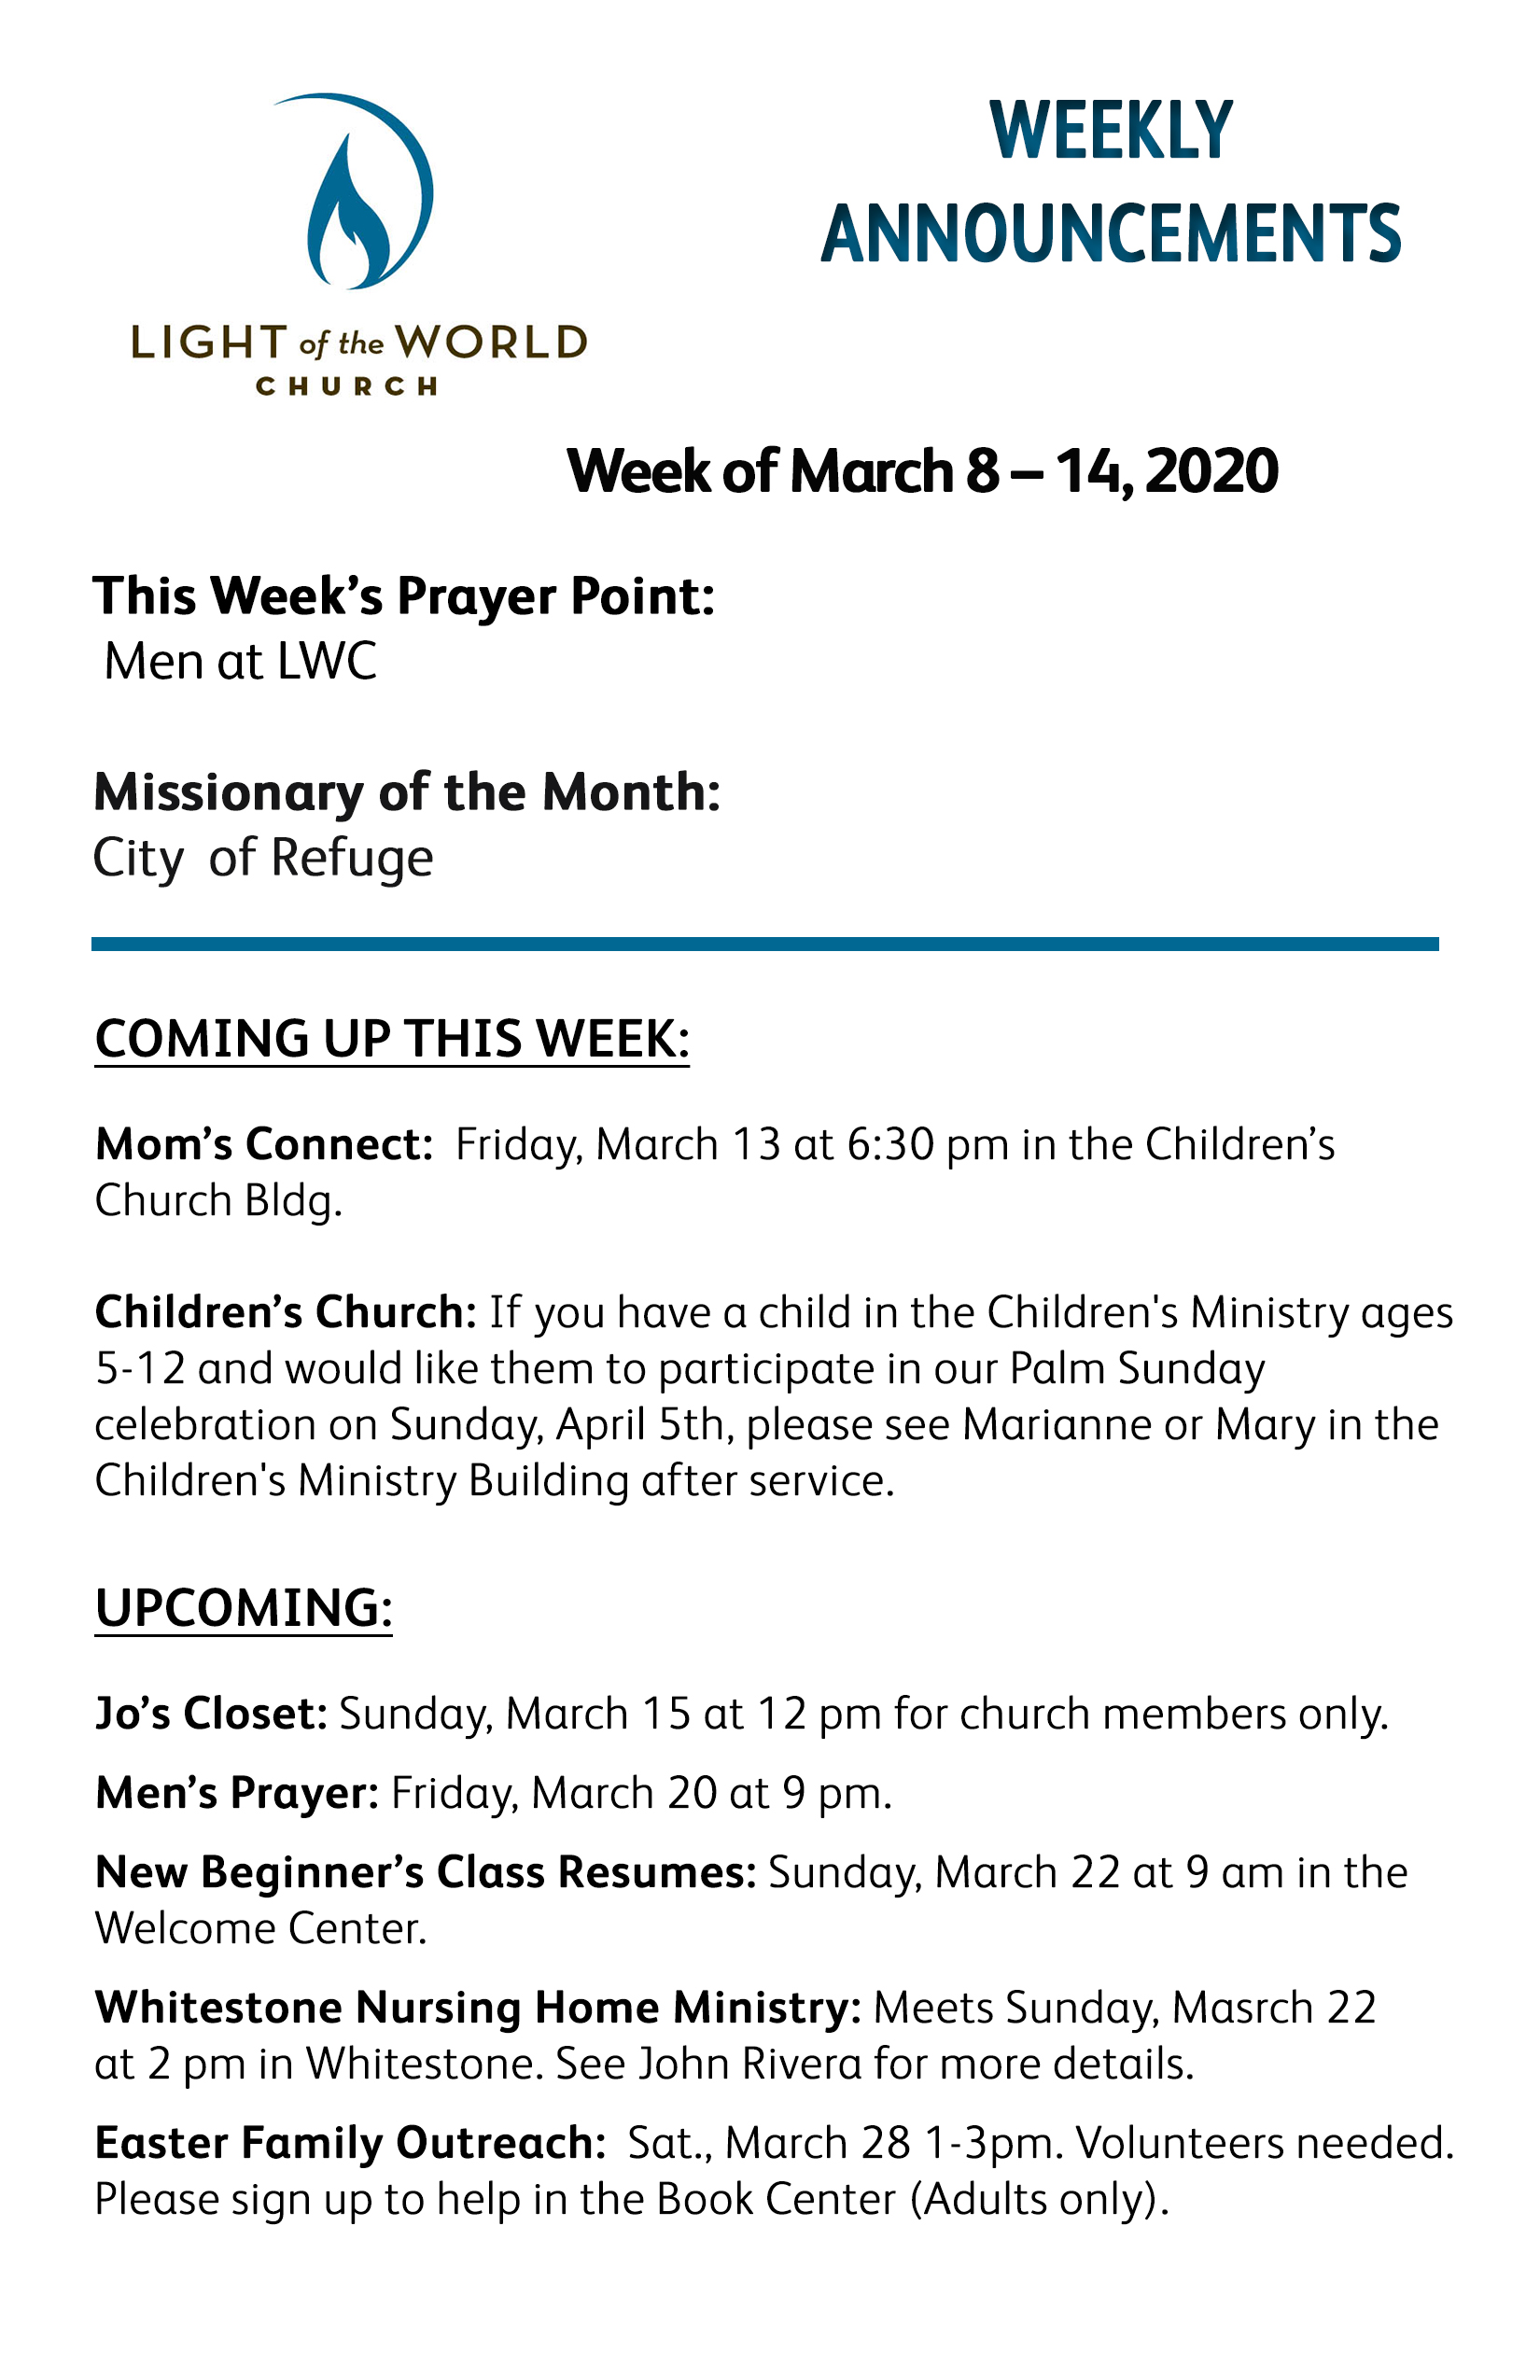 Mar 8-2020 Weekly Announcements Front for Web copy